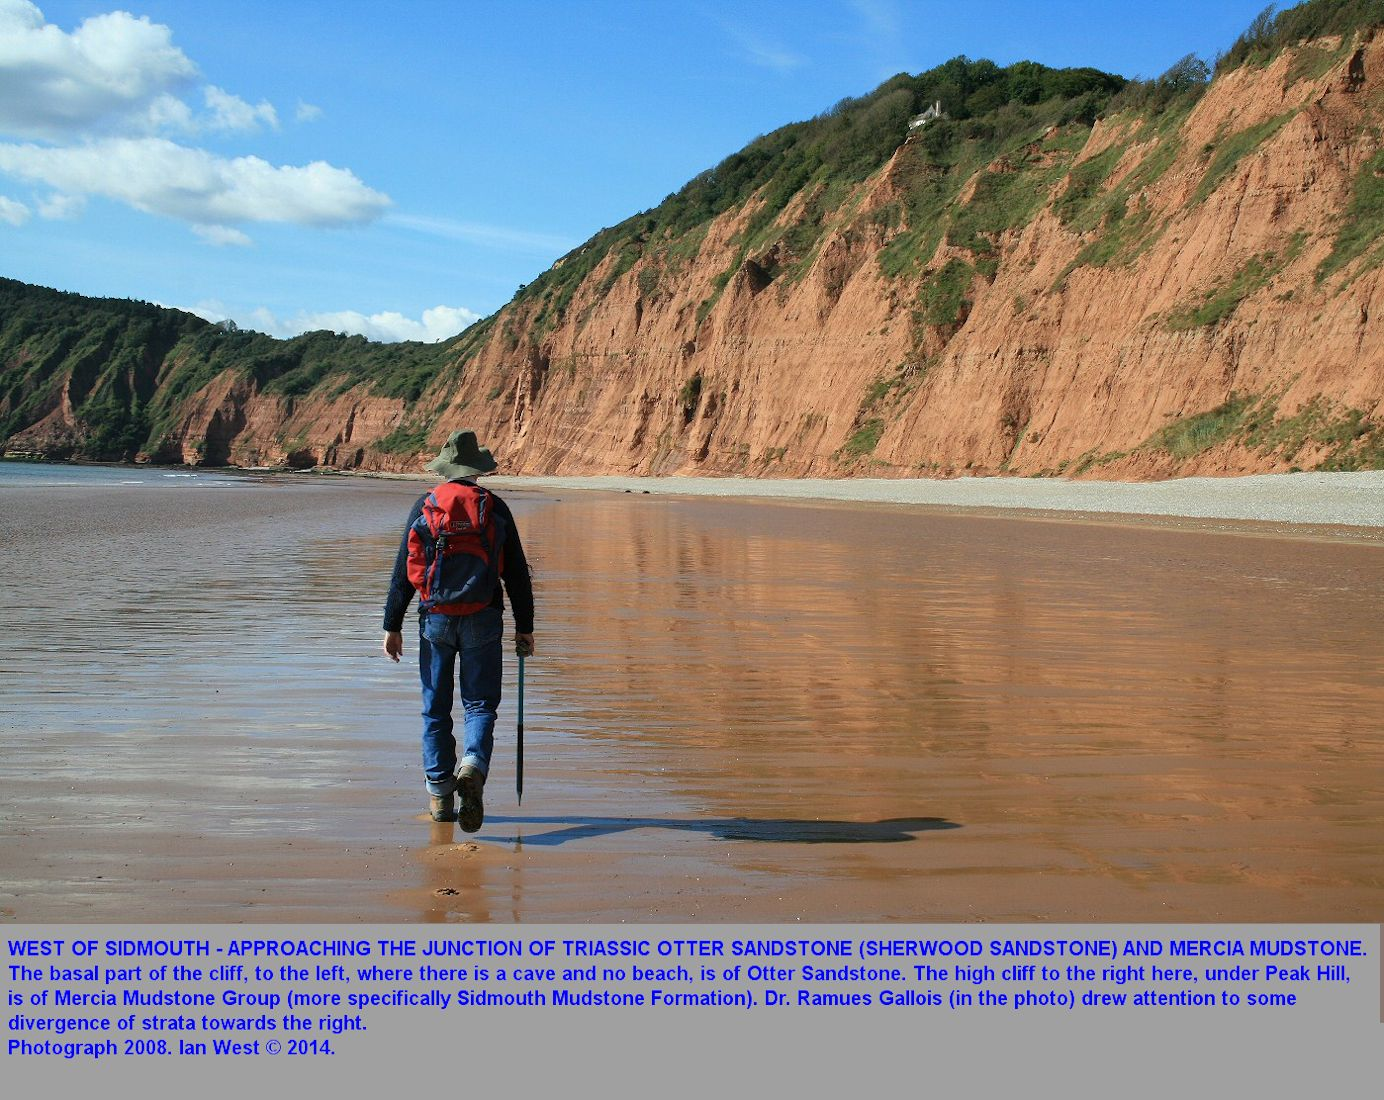 Walking across the bay from Jacob's Ladder to the Otter Sandstone - Mercia Mudstone junction, west of Sidmouth, Devon, 29th September 2008, revised 2015